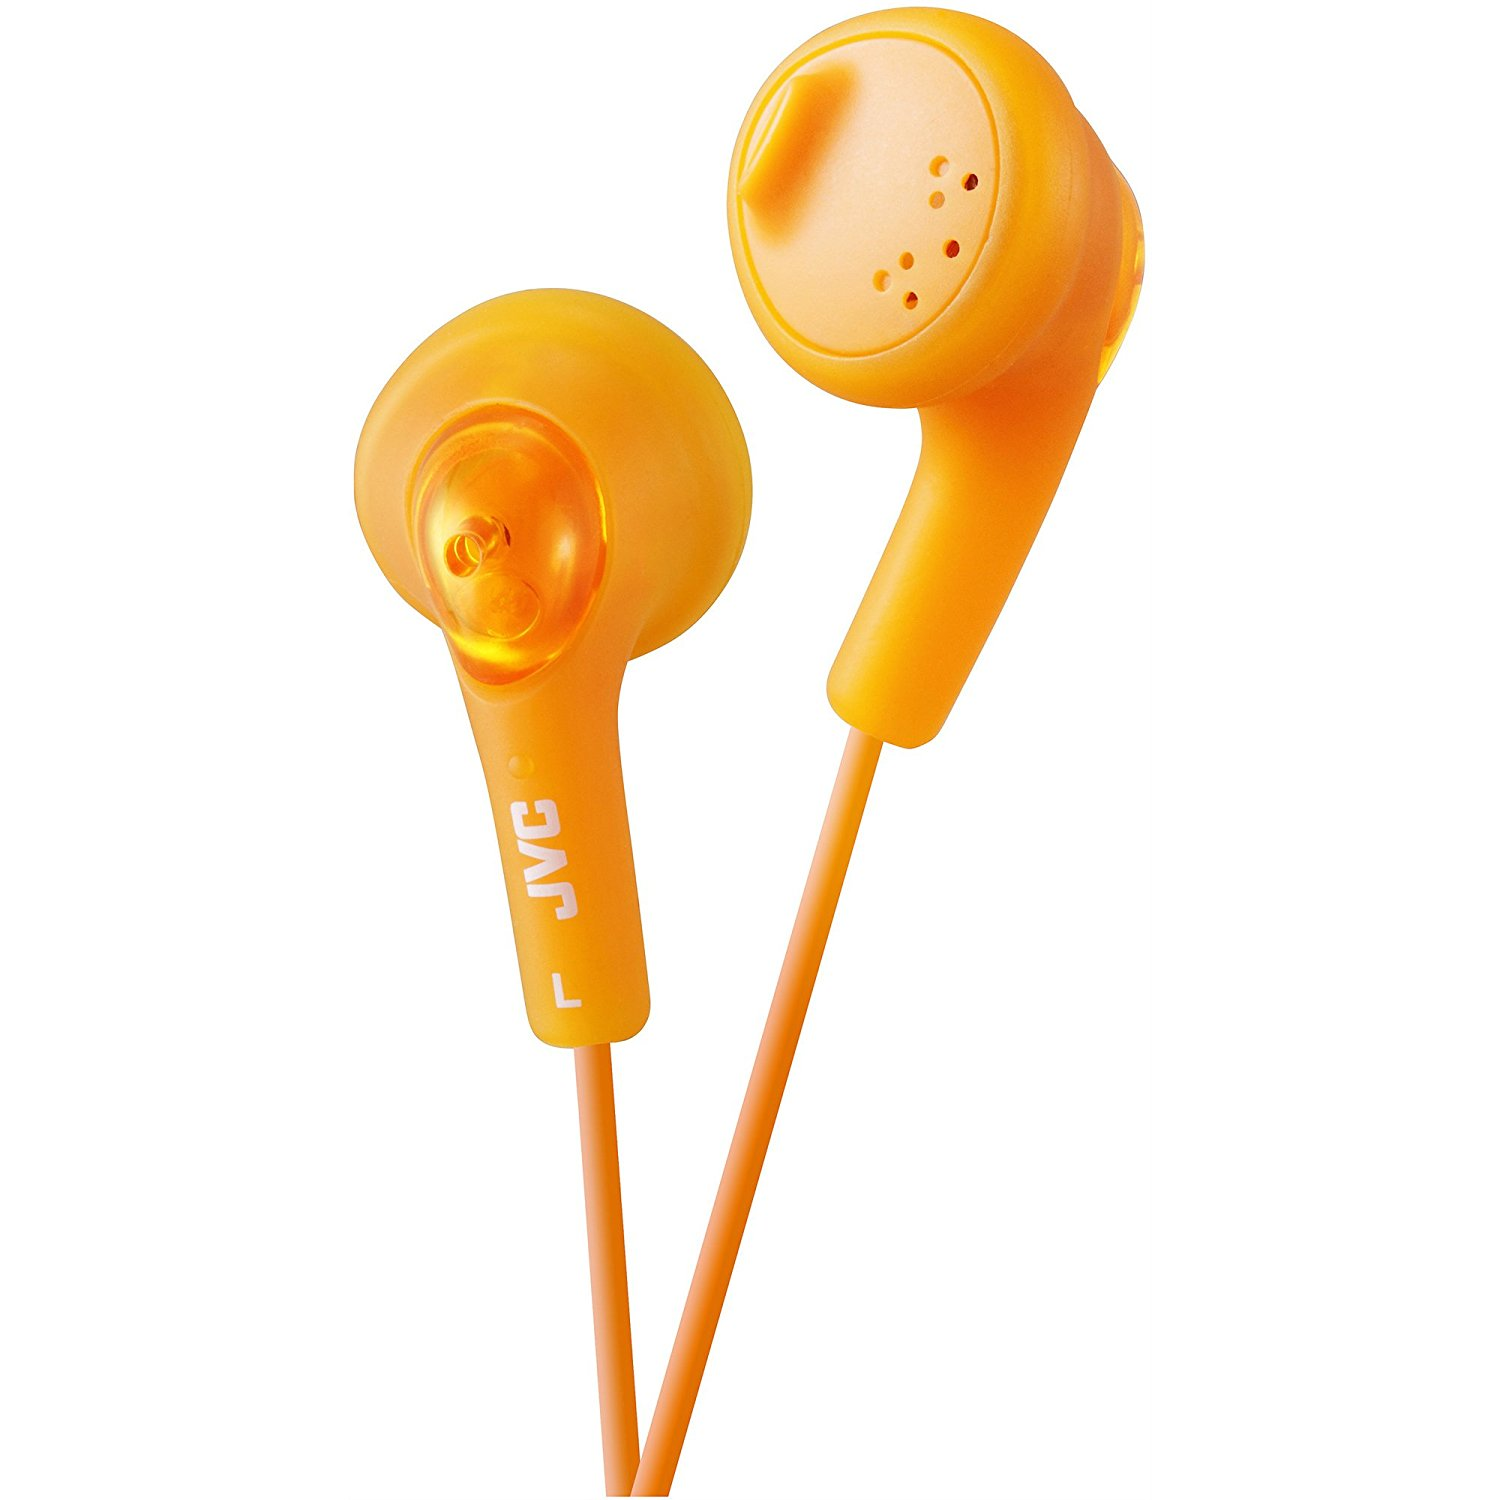 HAF160D Gumy Ear Bud Headphone Orange, Wired 15 16 GumyR Earphone Stereo Orange HAF160 Bud Earbuds Miniphone Earbud Hz Ohm JVC Ear Gumy HAF160D Headphone.., By JVC